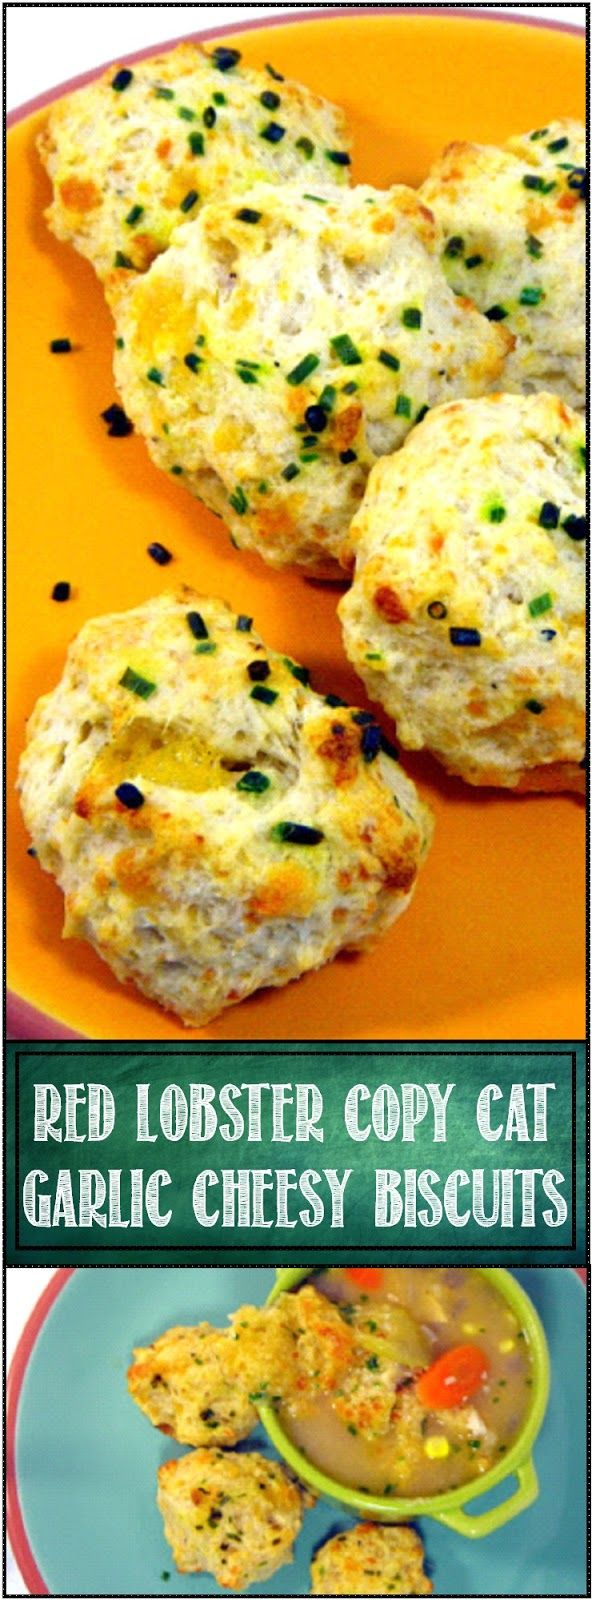 Red Lobster Copy Cat Garlic Cheesy Biscuits Restaurant